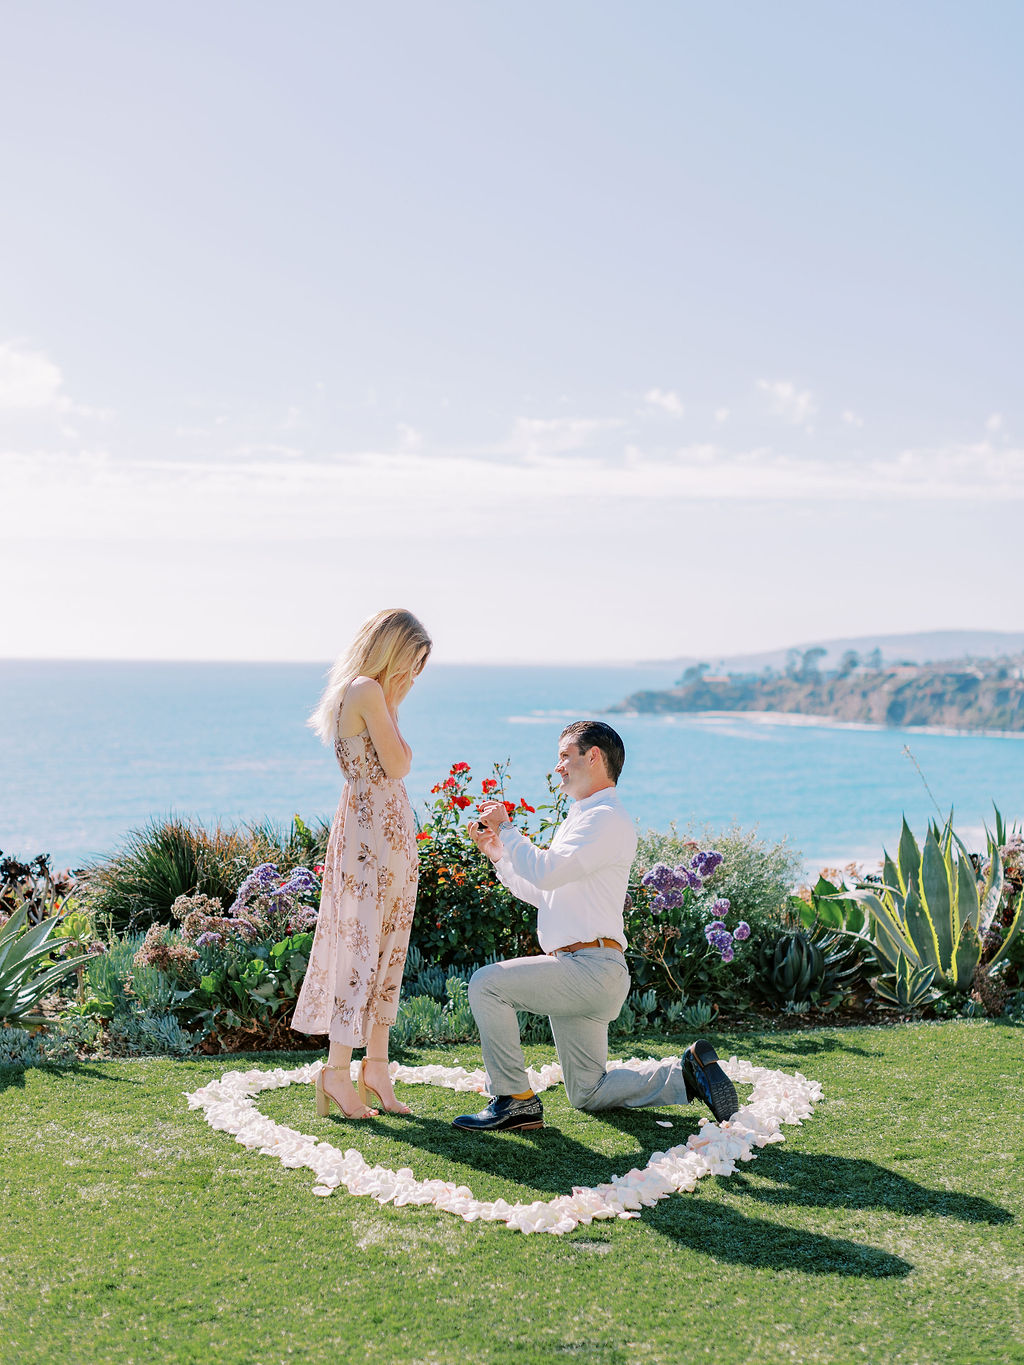 Man down on one knee during marriage proposal